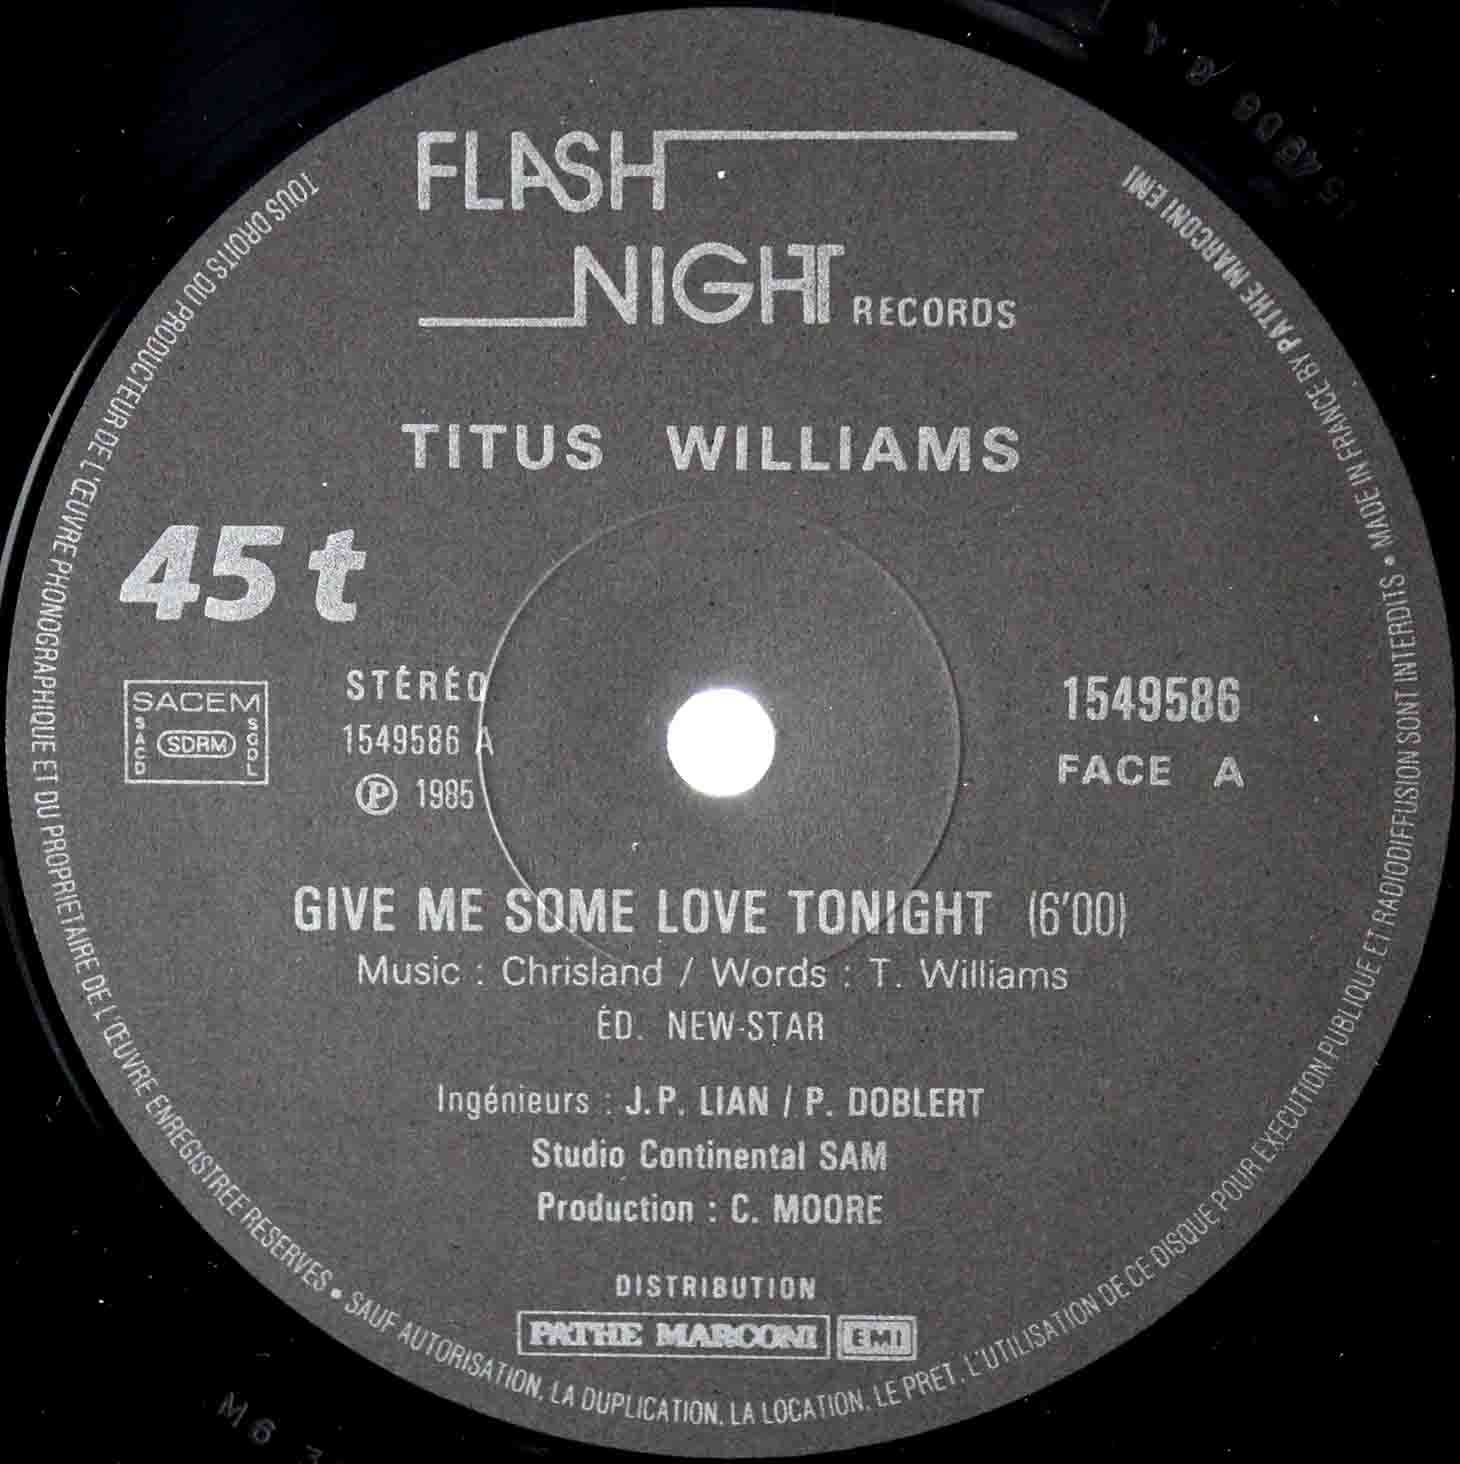 Titus Williams – Give Me Some Love Tonight 03